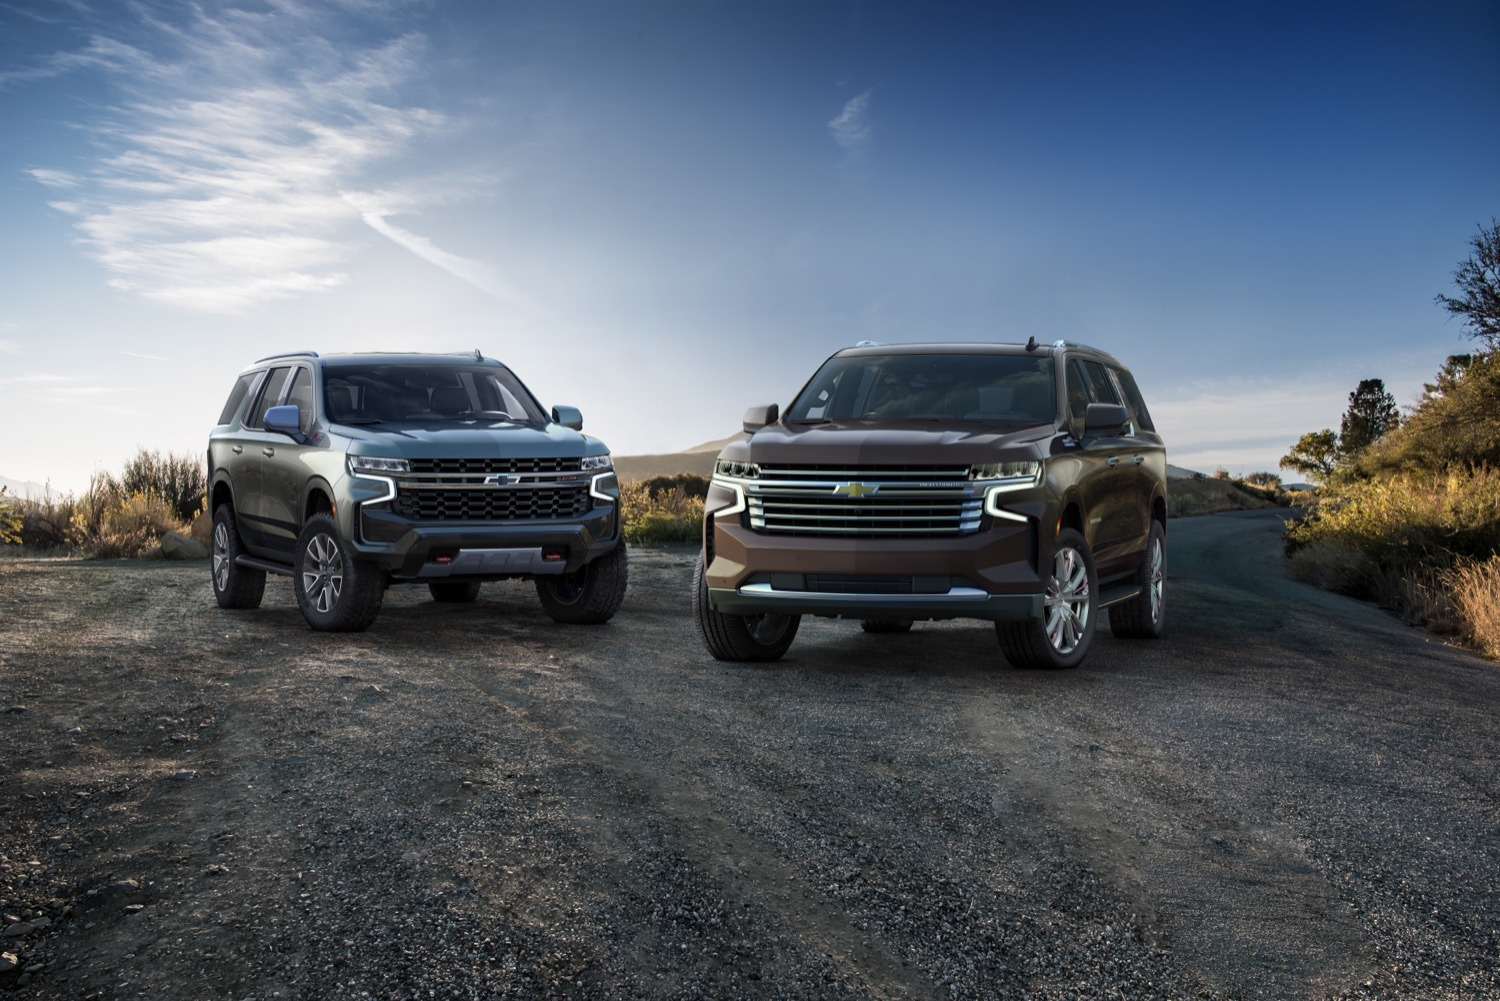 2021 Chevrolet Suburban, Chevy Tahoe Air Suspension Modes 2021 Buick Verano Upgrades, Towing Capacity, Ground Clearance